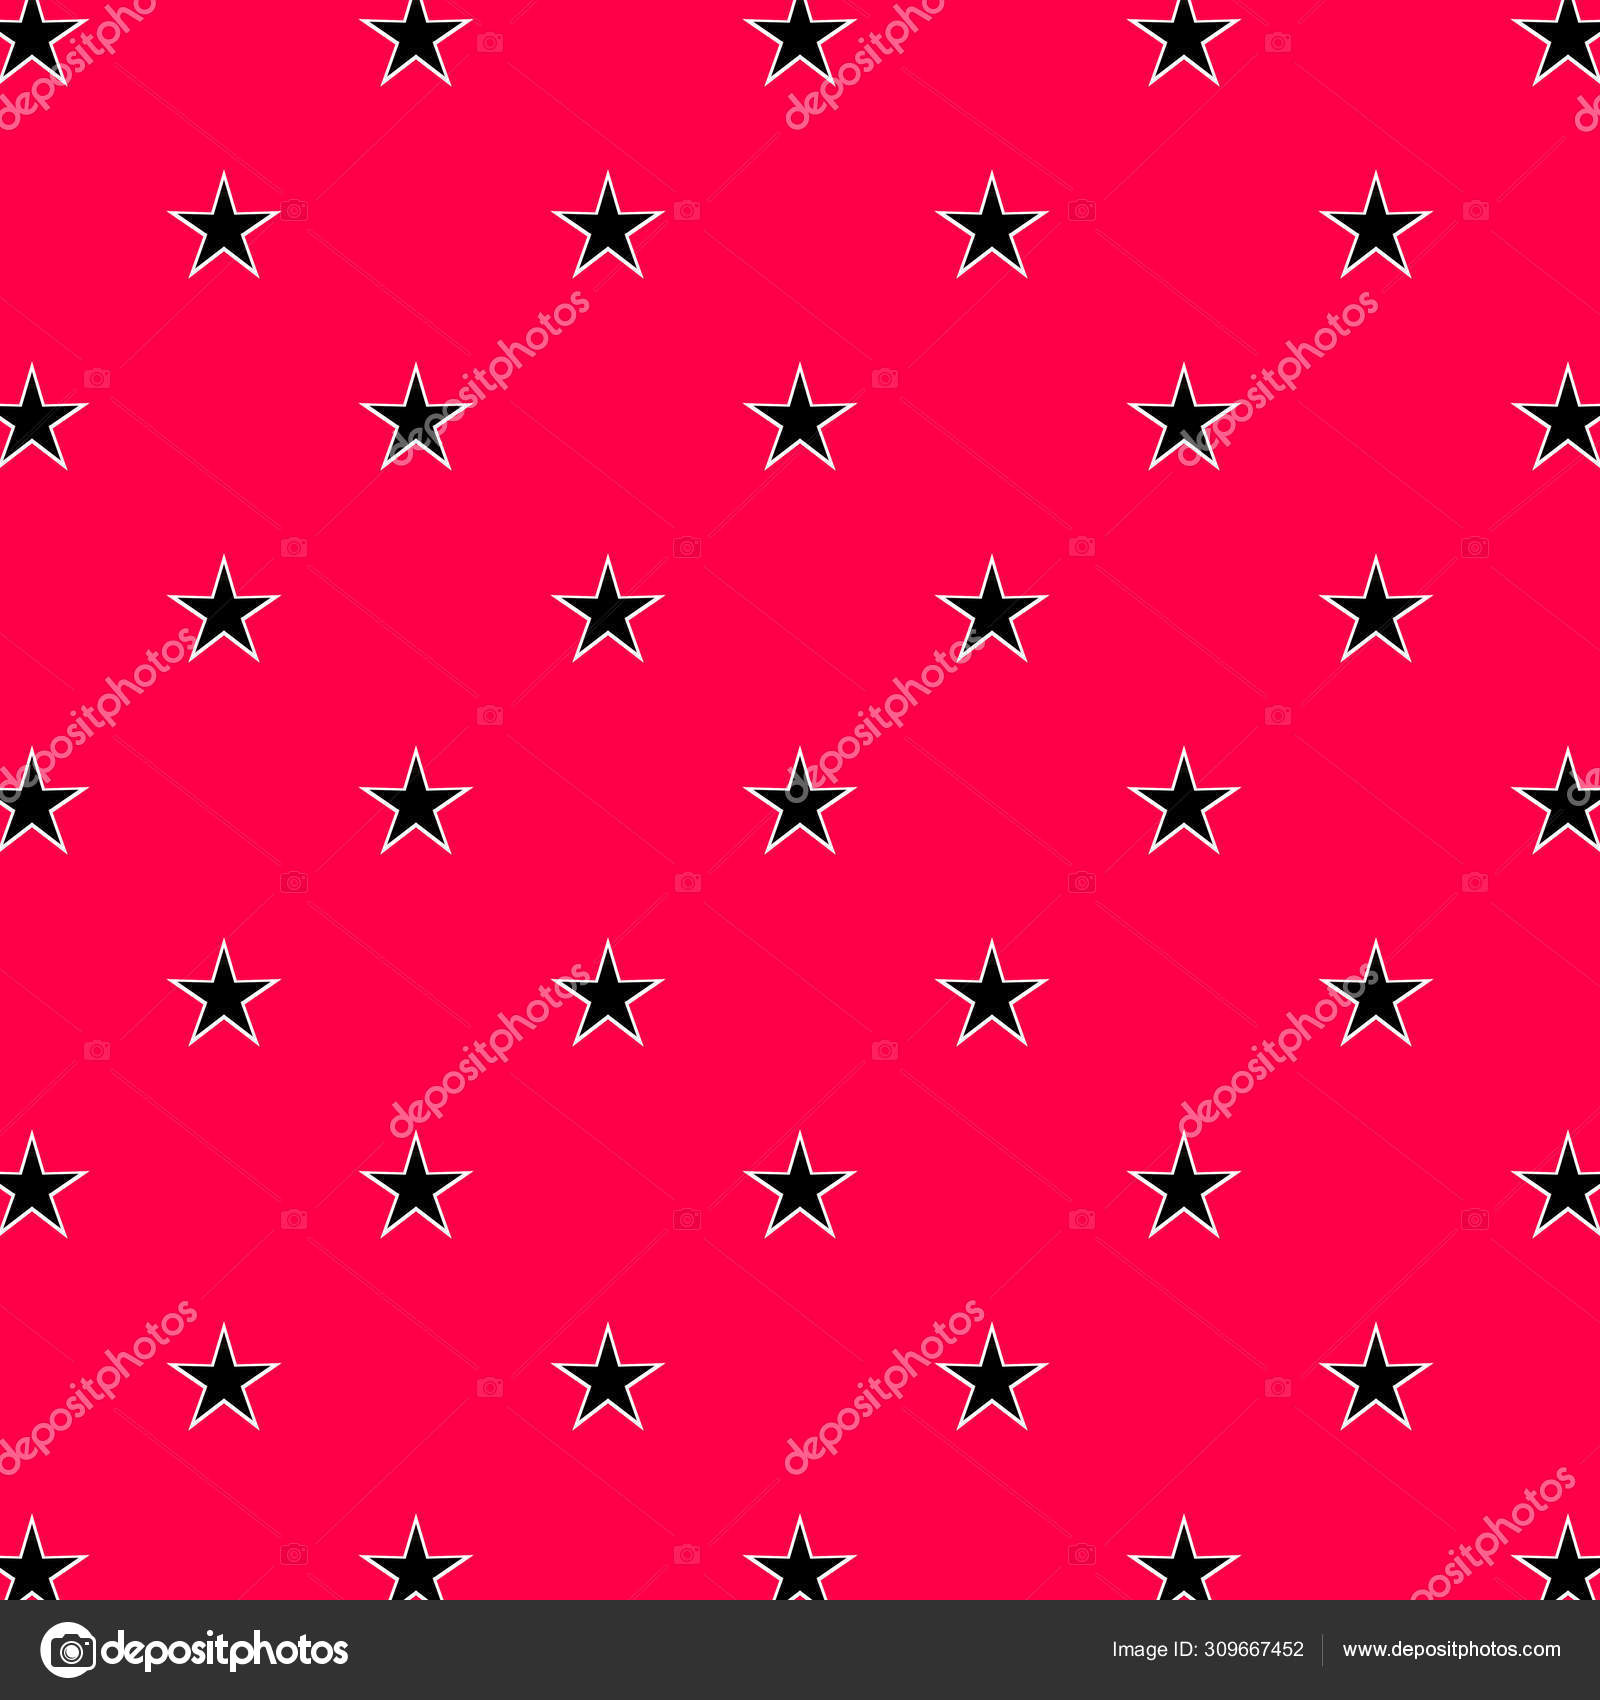 Abstract Seamless Star Pattern Wallpaper Black Pink Background